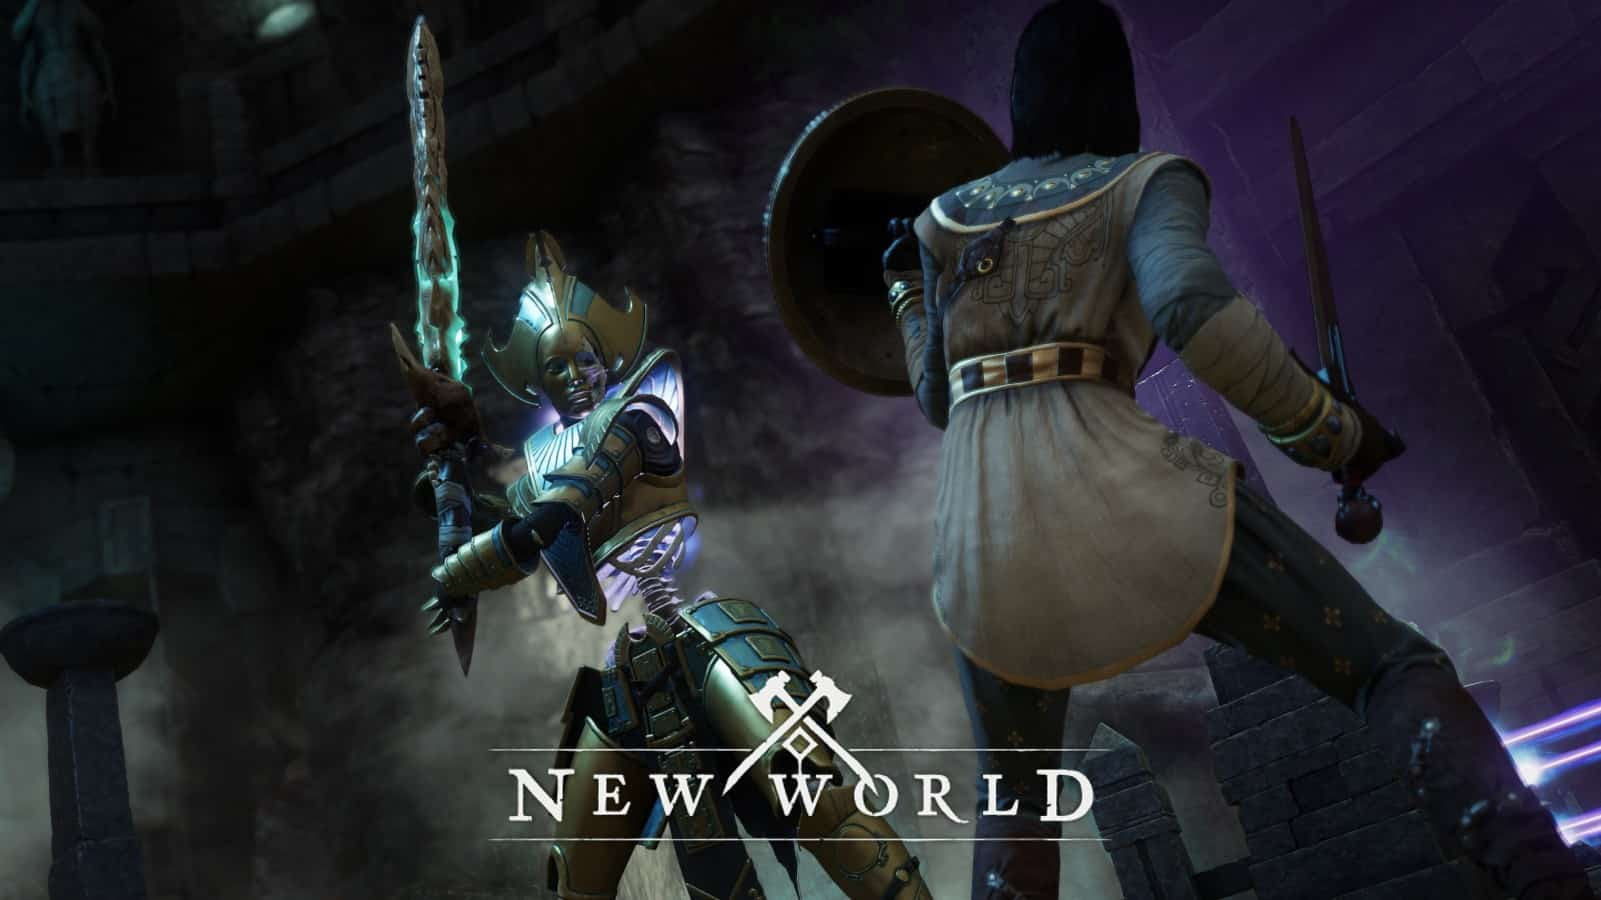 New World: So you want to level up your weapons quickly